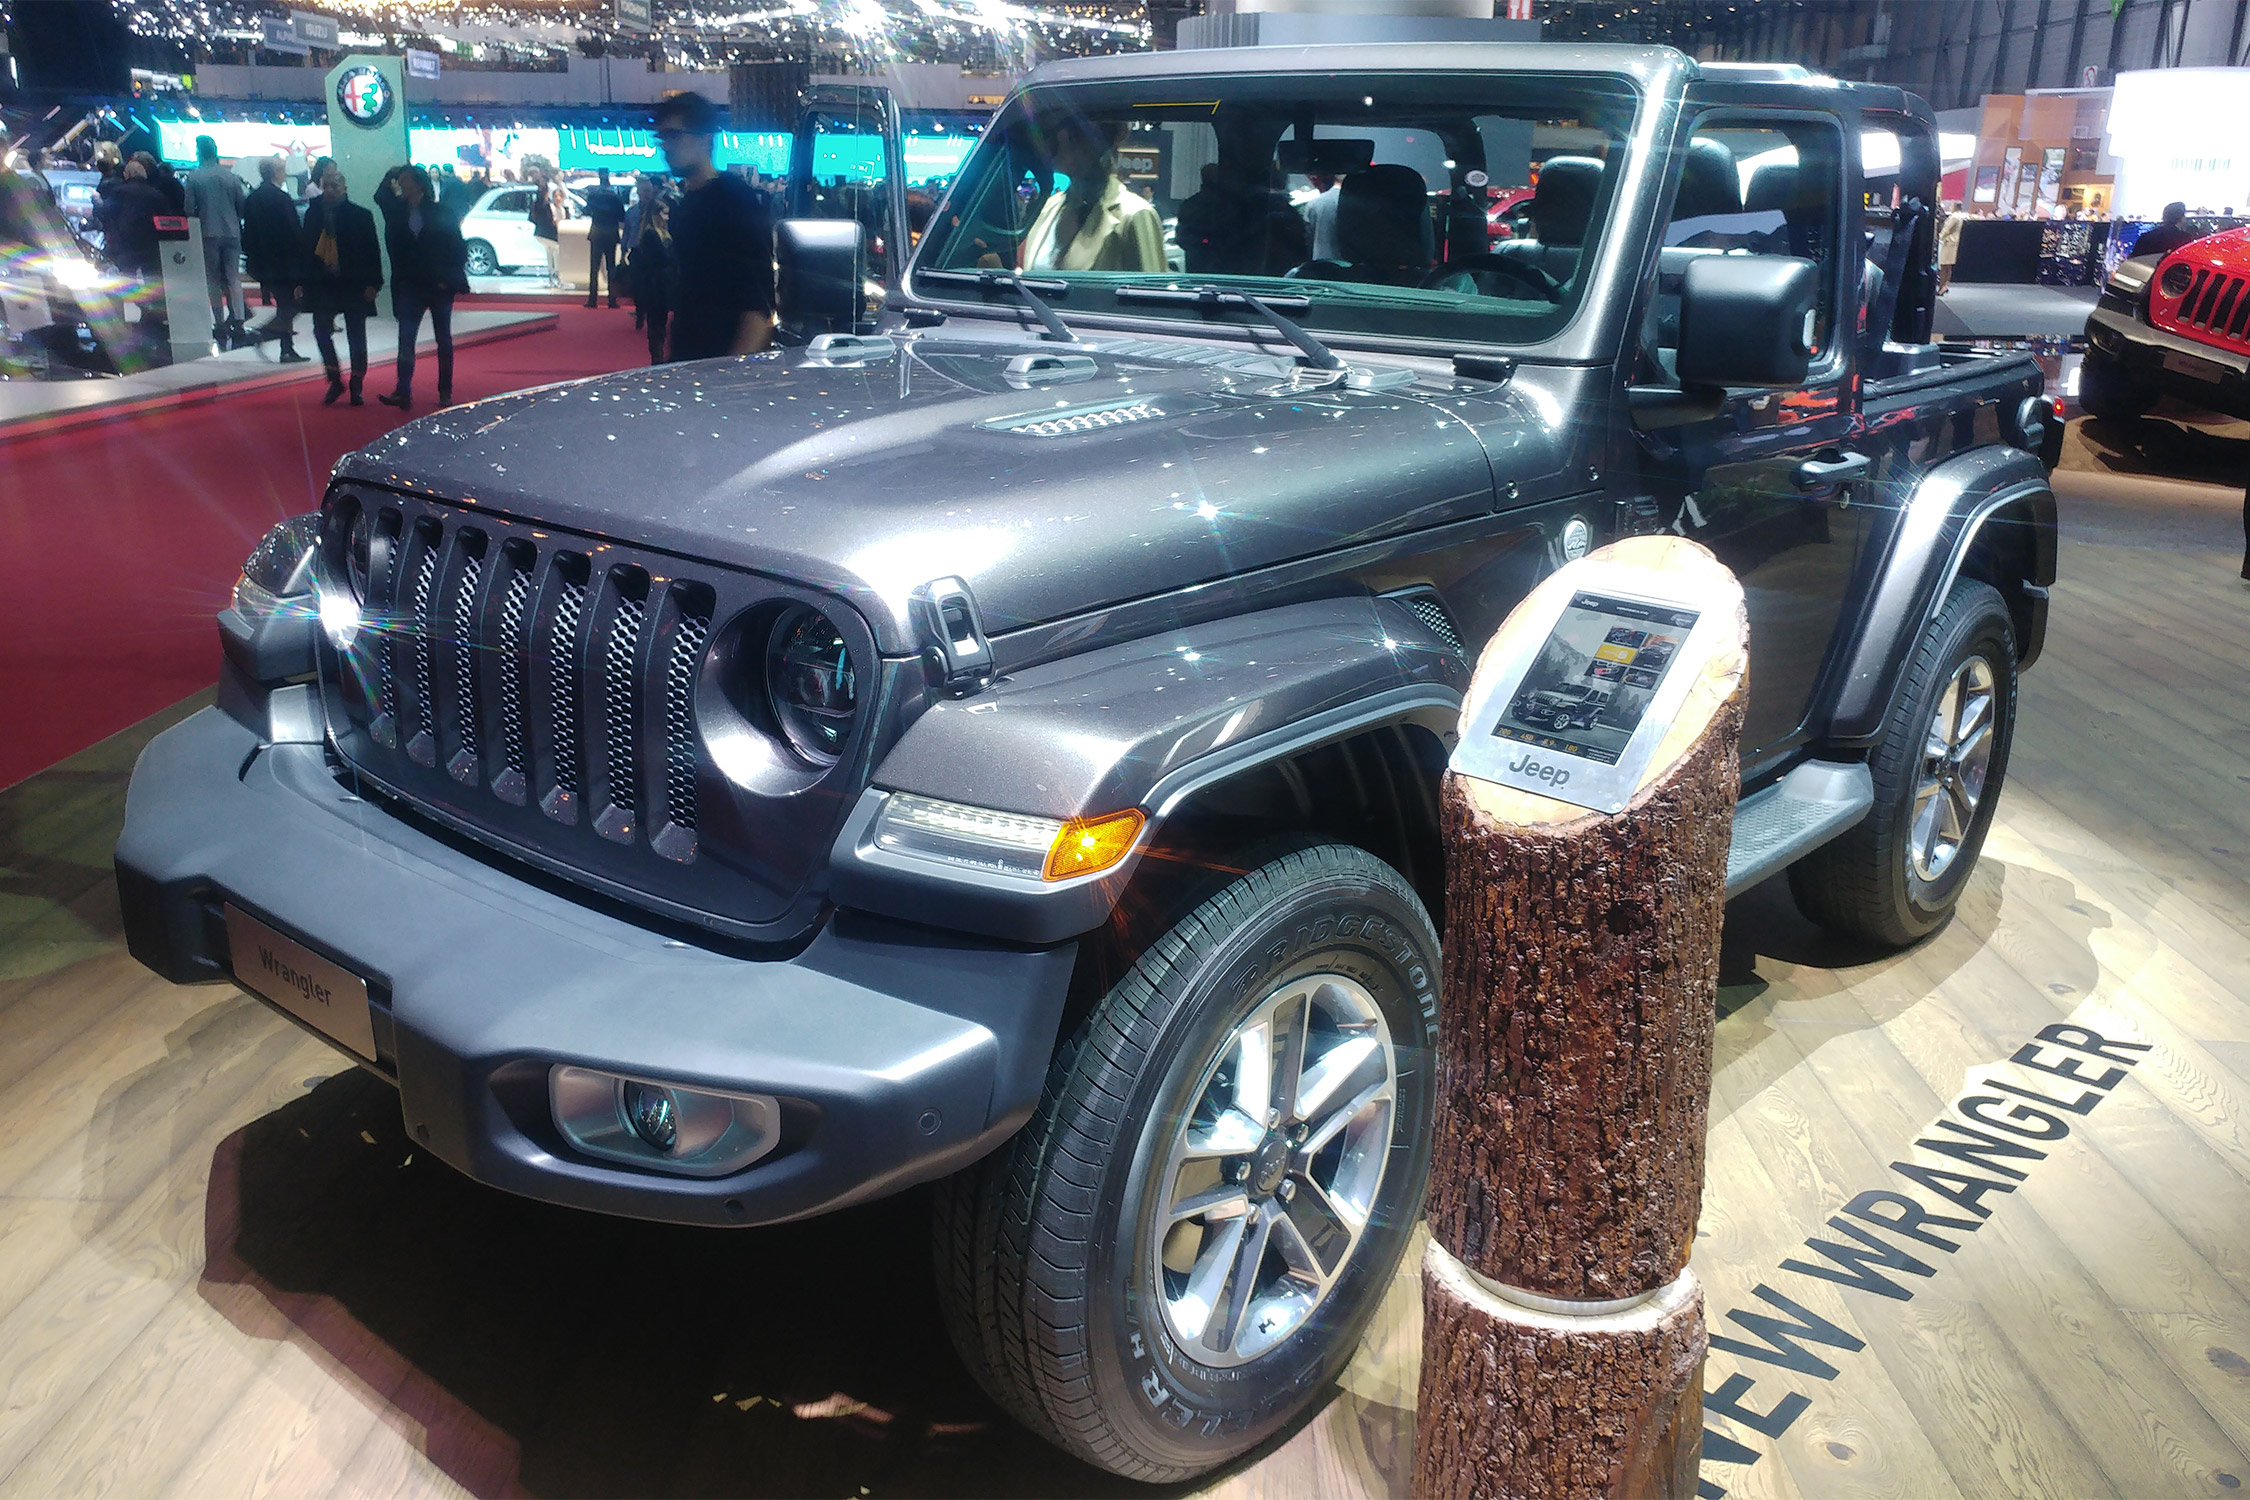 jeep wrangler jl salon de gen ve gims 2018. Black Bedroom Furniture Sets. Home Design Ideas